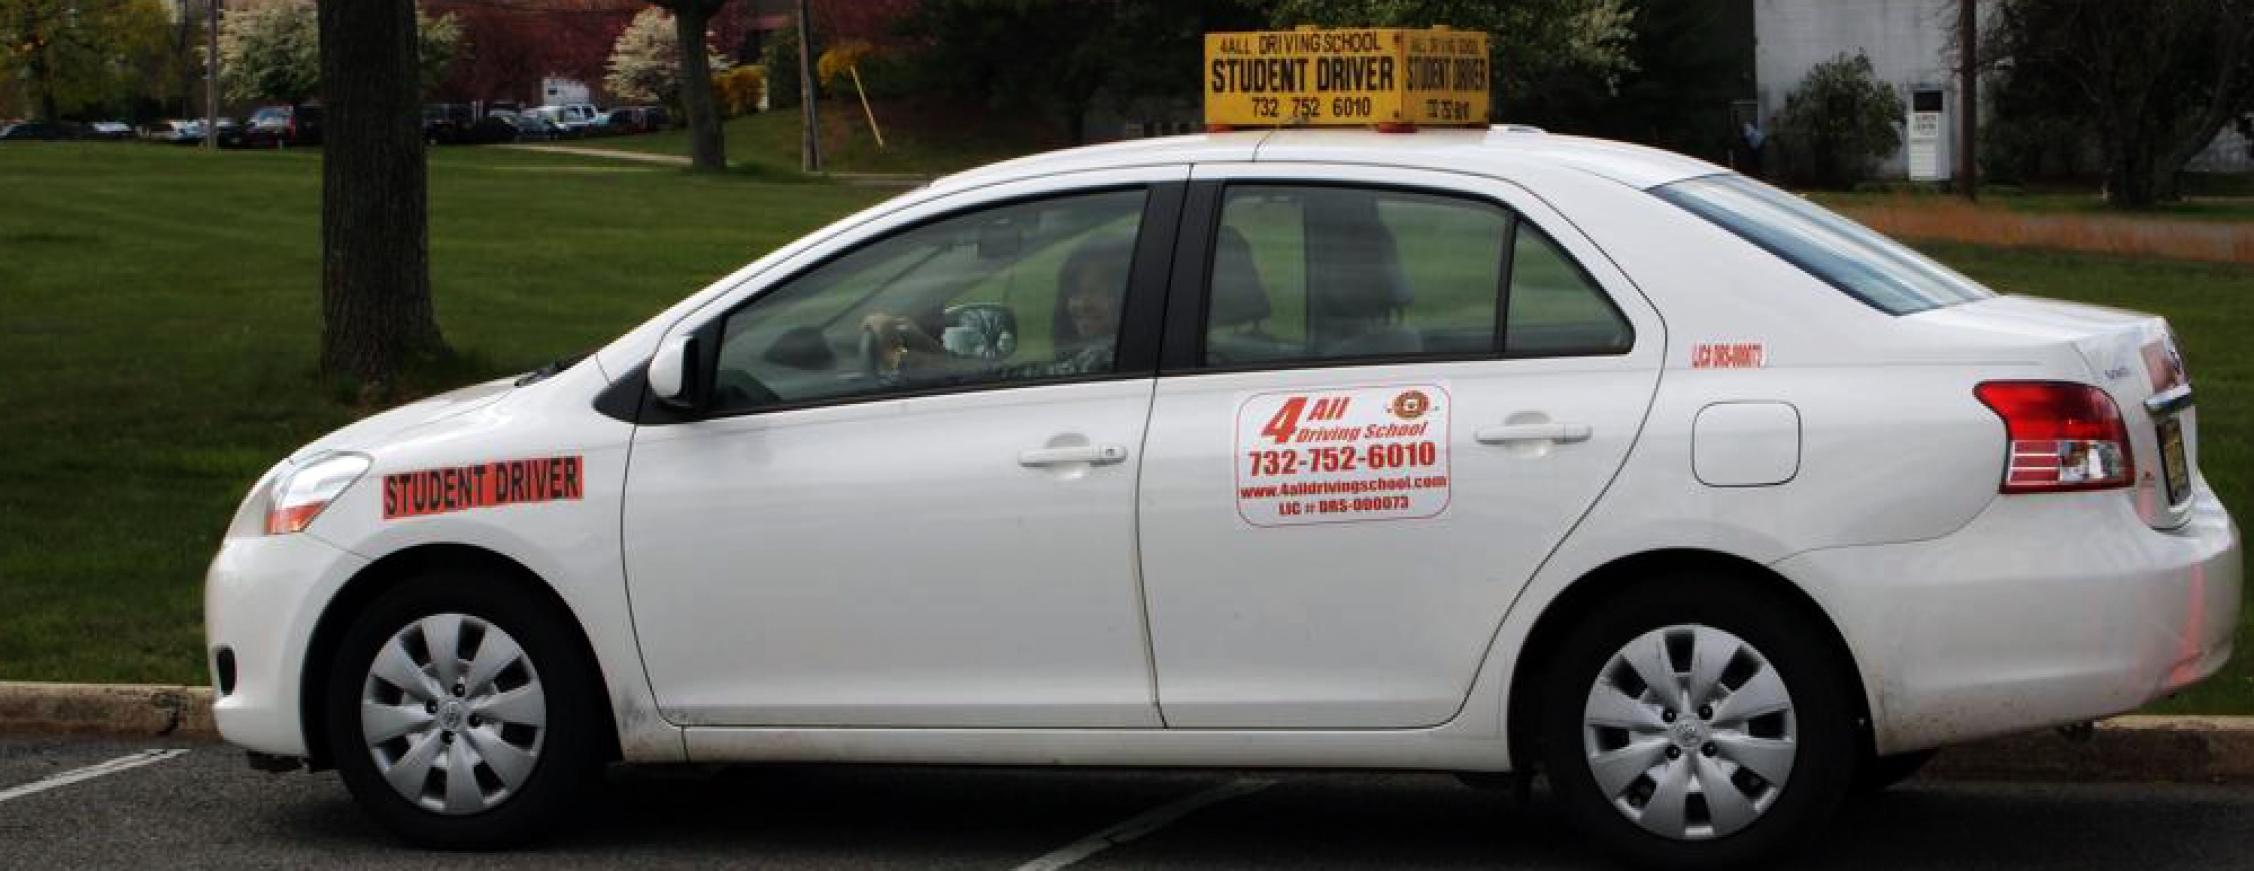 4 All Driving School